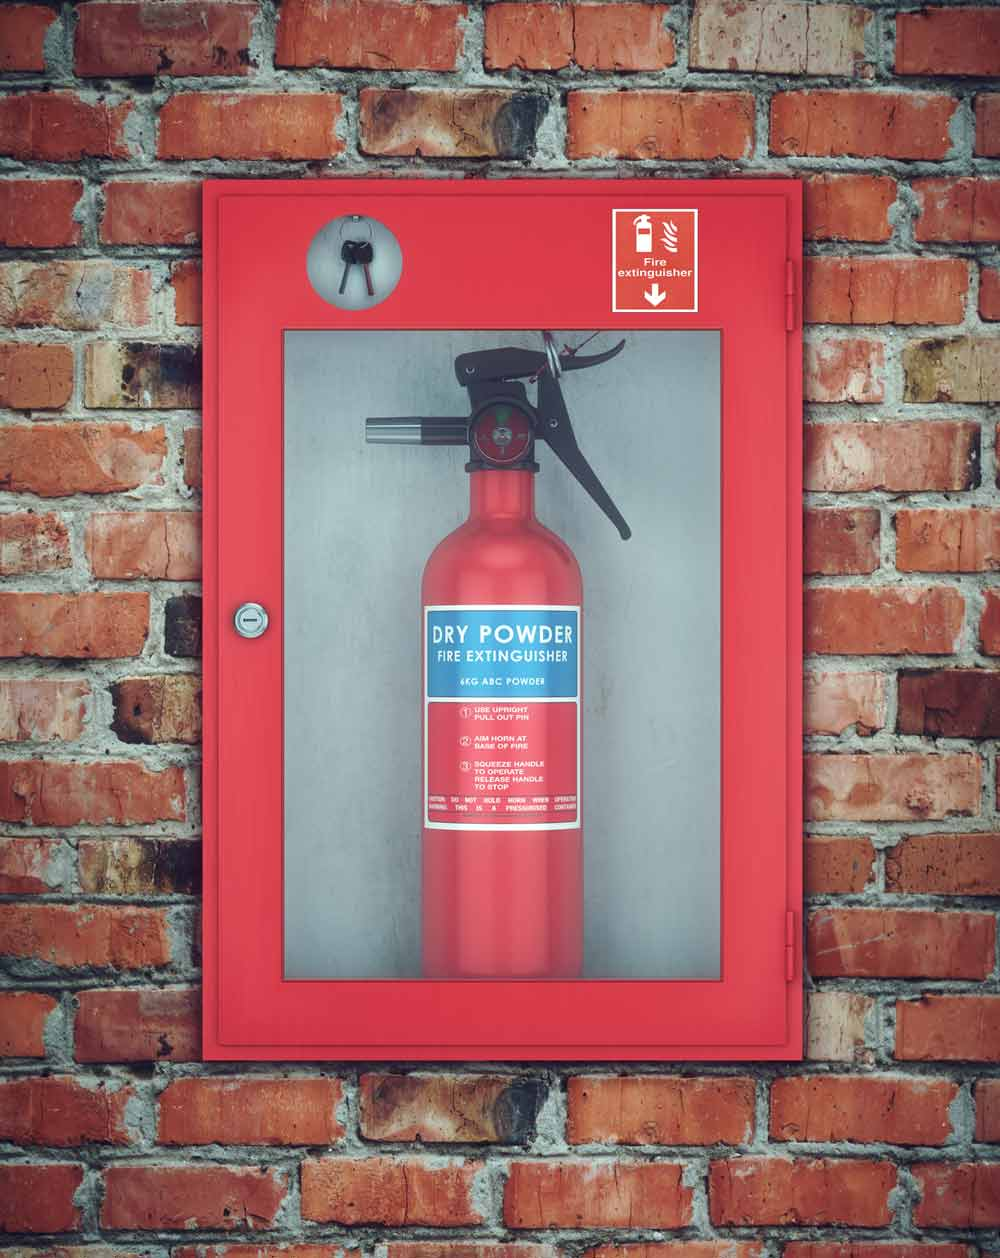 Fire safety equipment in Melbourne